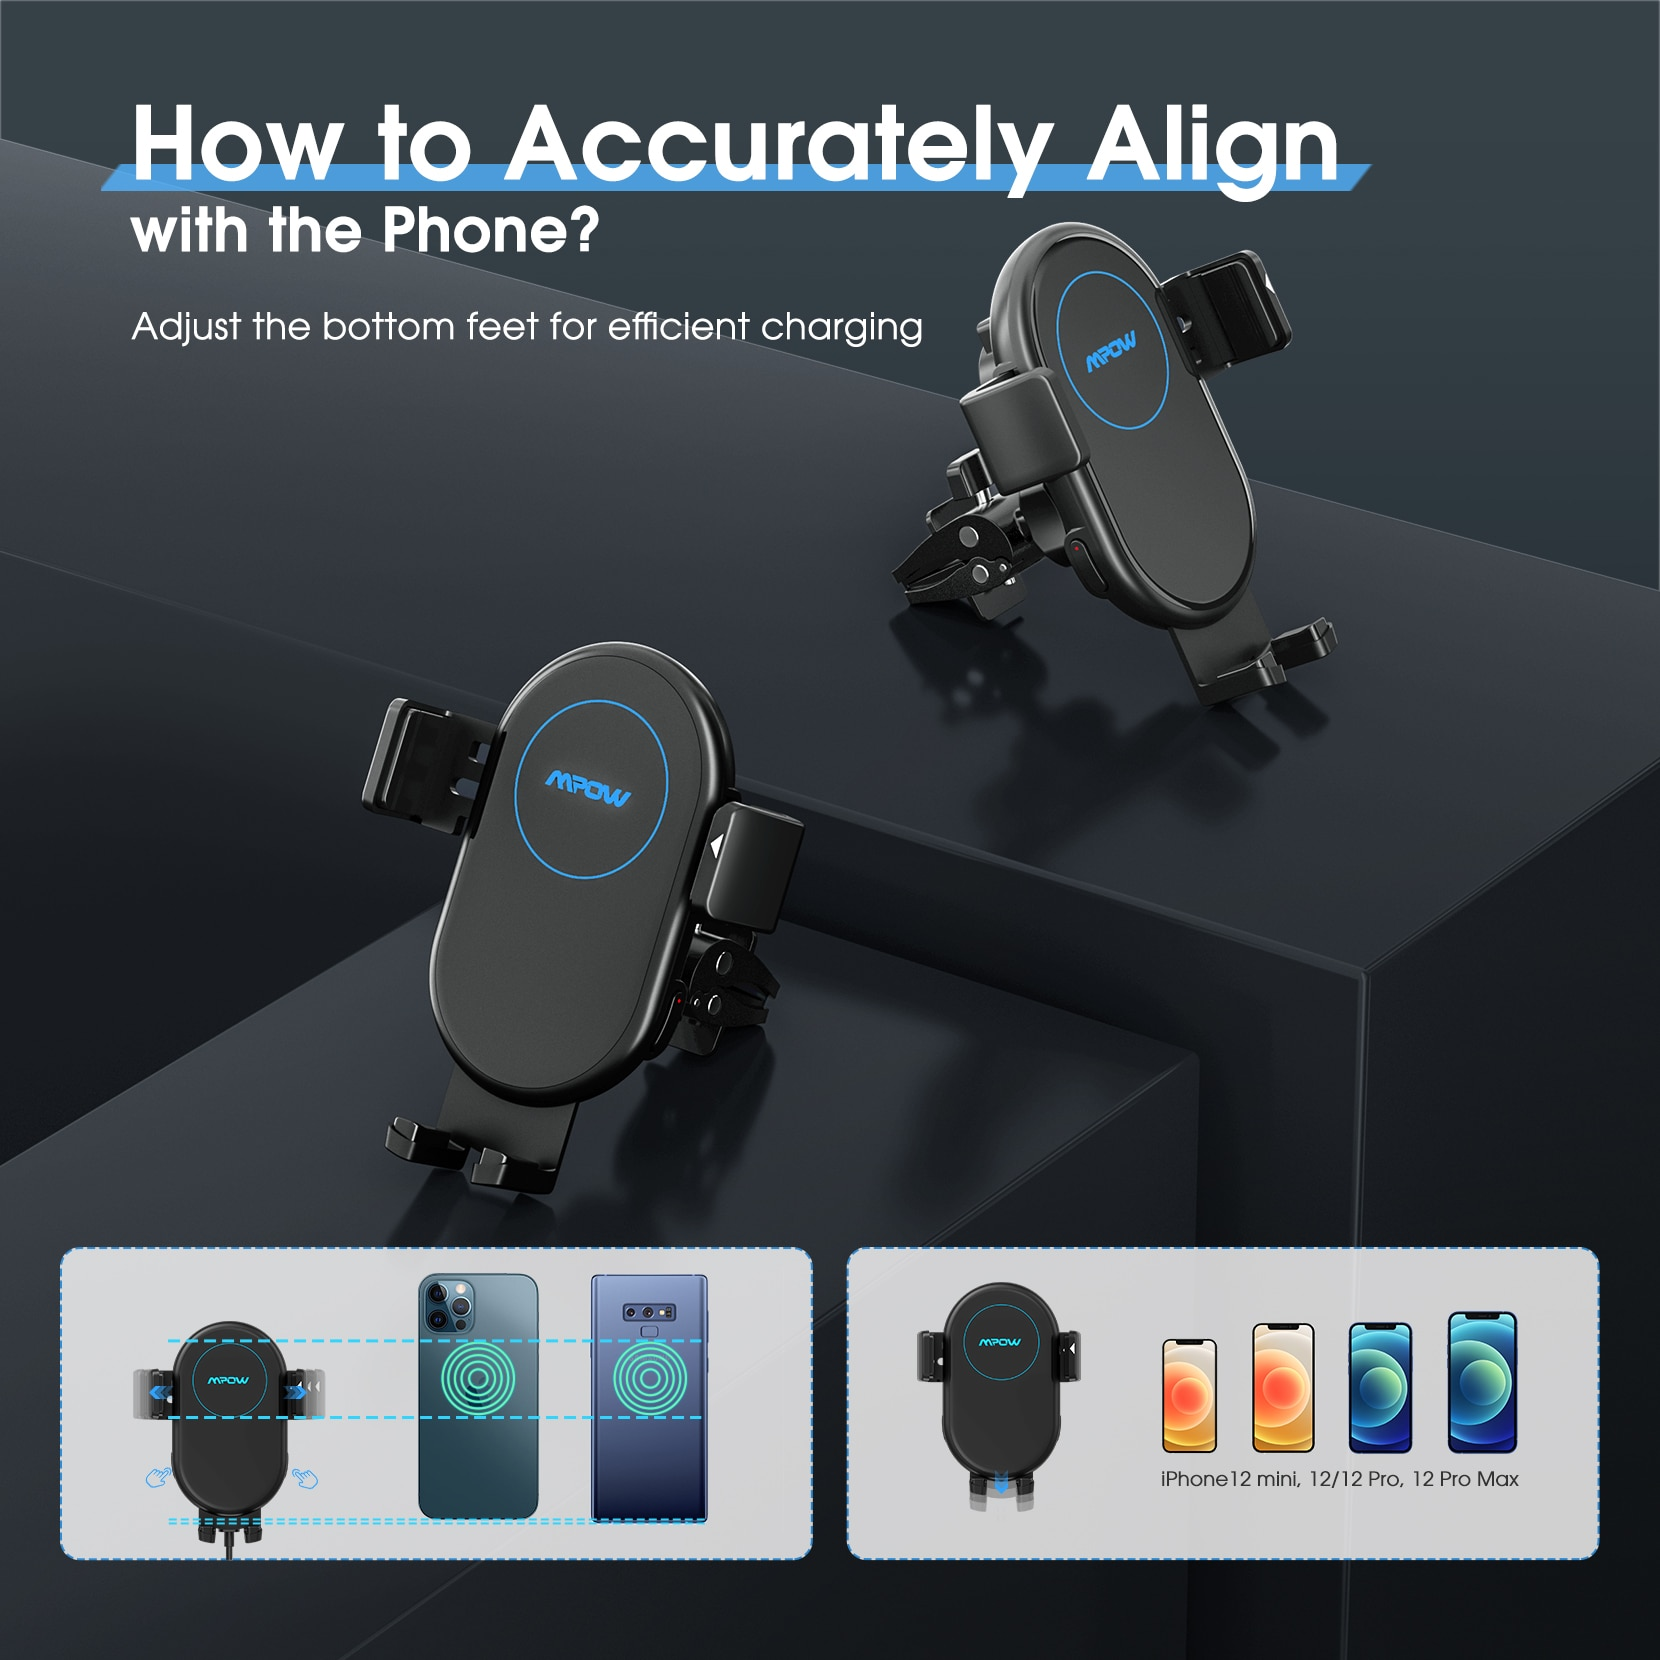 H8802d3f727fa4e1bb3e4feddbd186234t - Mpow Wireless Car Charger Mount 10W Auto-clamping Qi Fast Charging Car Mount with Power Storage Car Phone Holder for iPhone 12